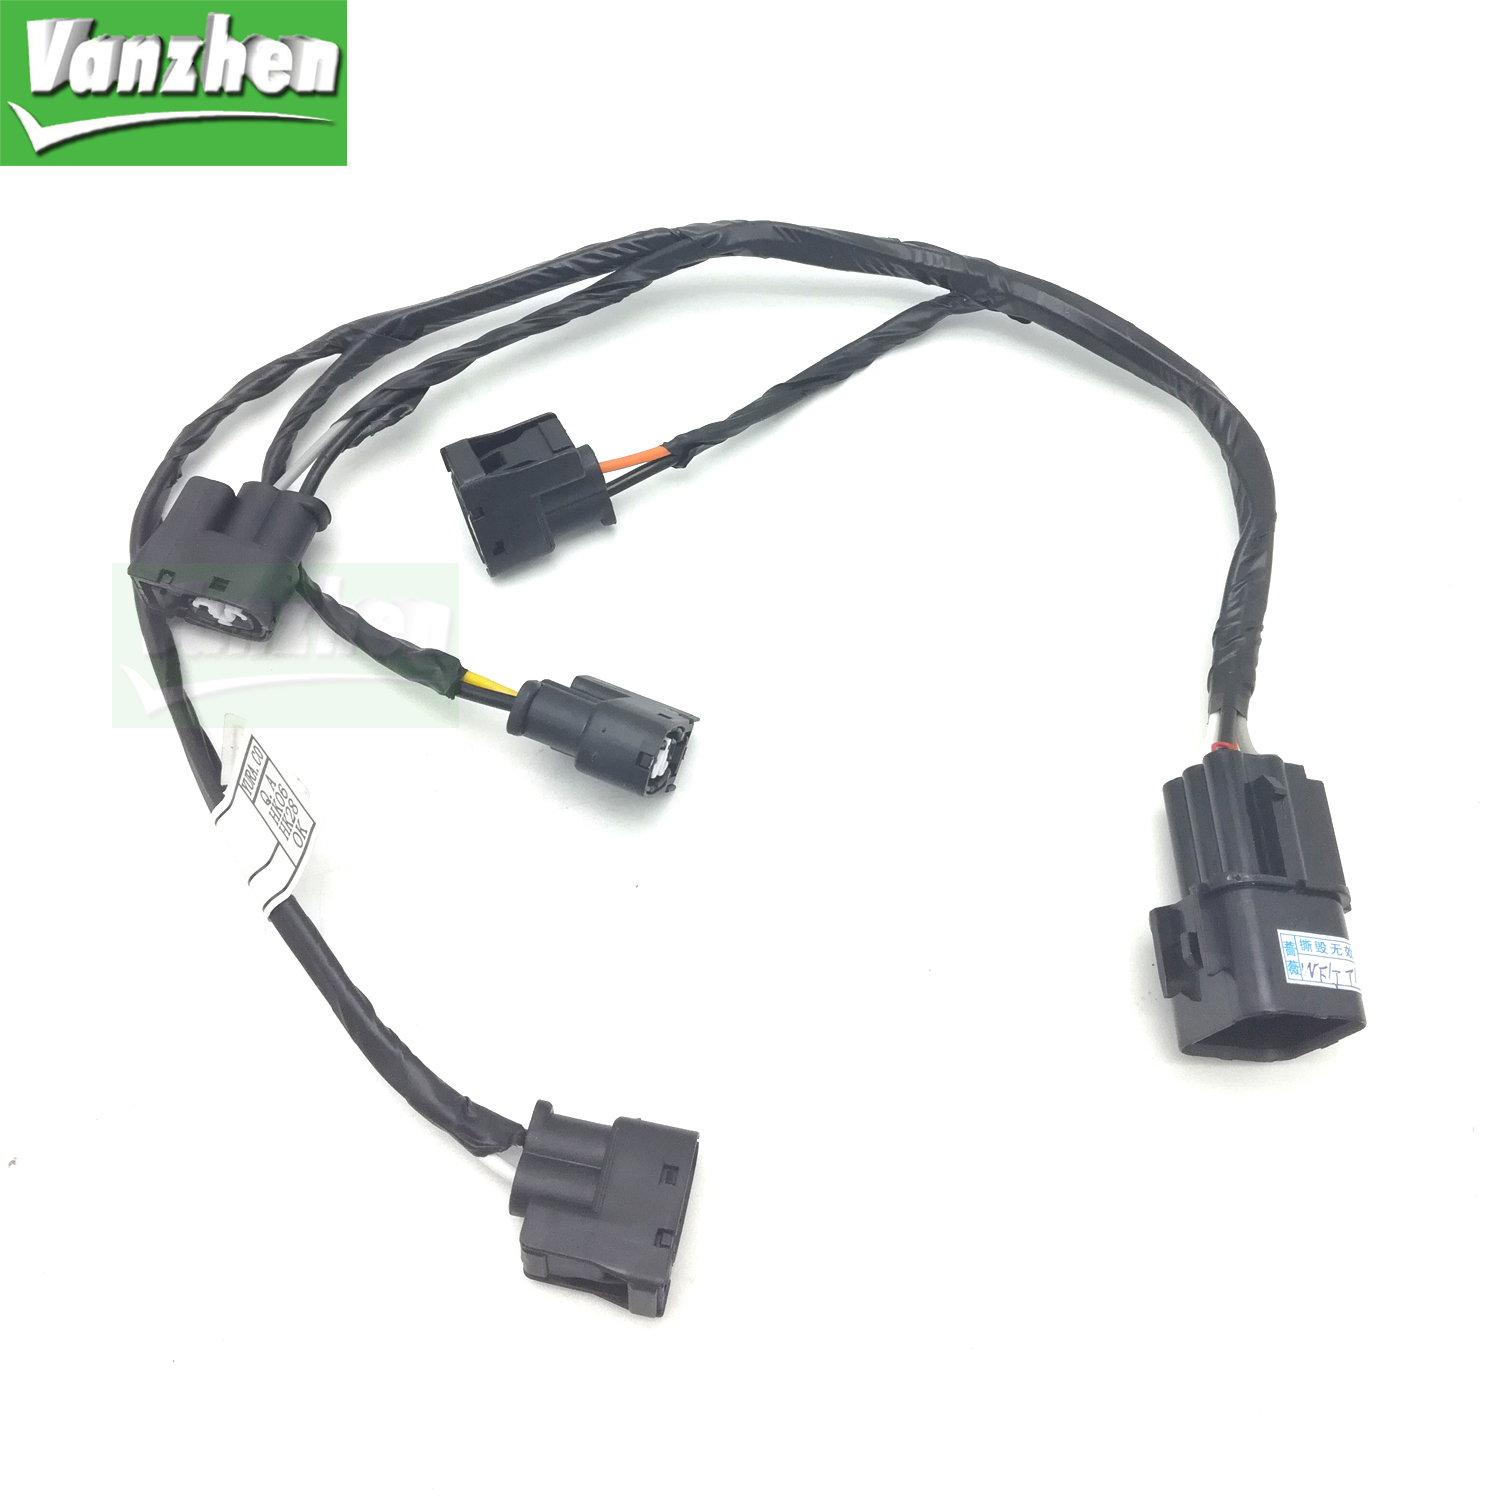 Ignition Coil Wire Harness Fits 06 11 Accent Rio Rio5 Oe 27350 Wiring 26620